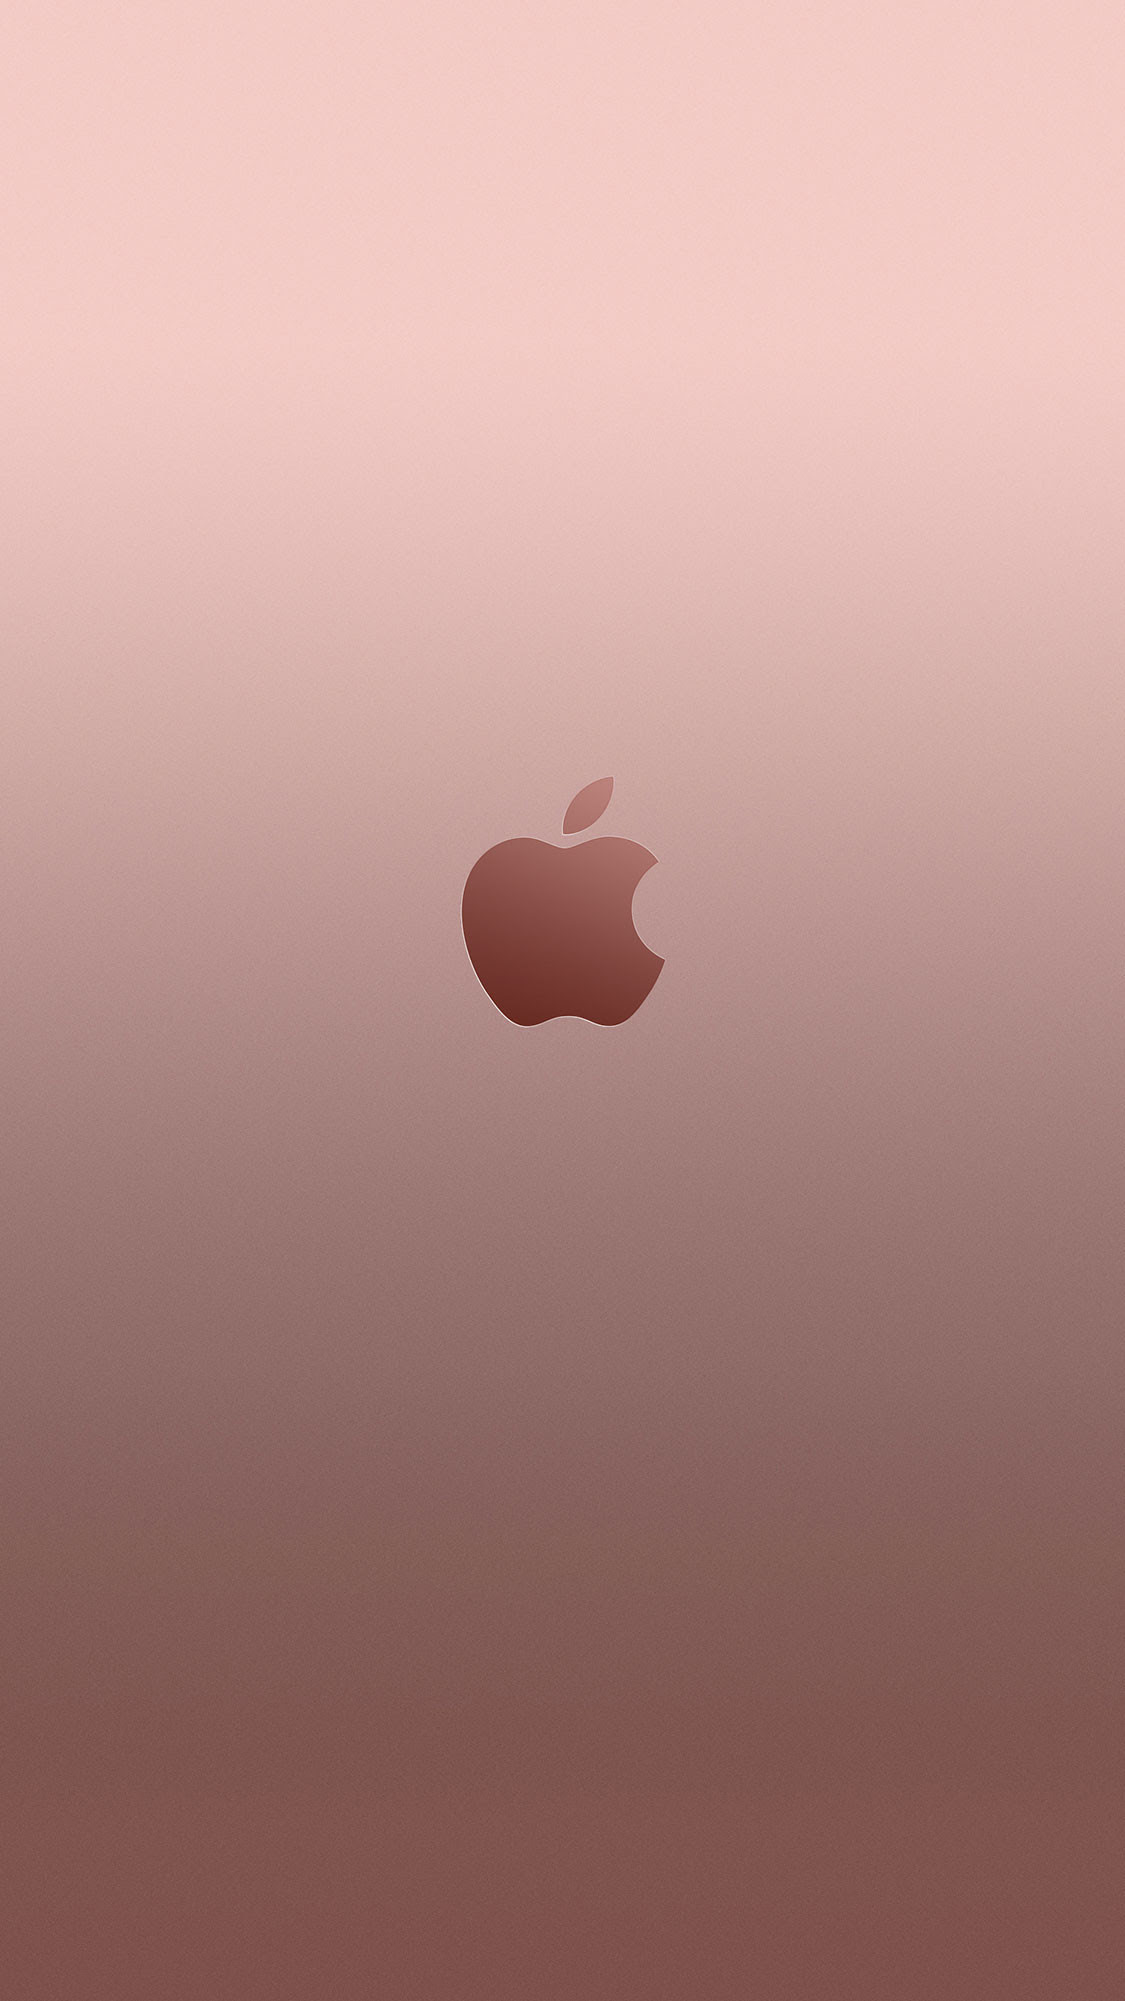 Rose Gold Iphone Wallpaper 79 Images Images, Photos, Reviews